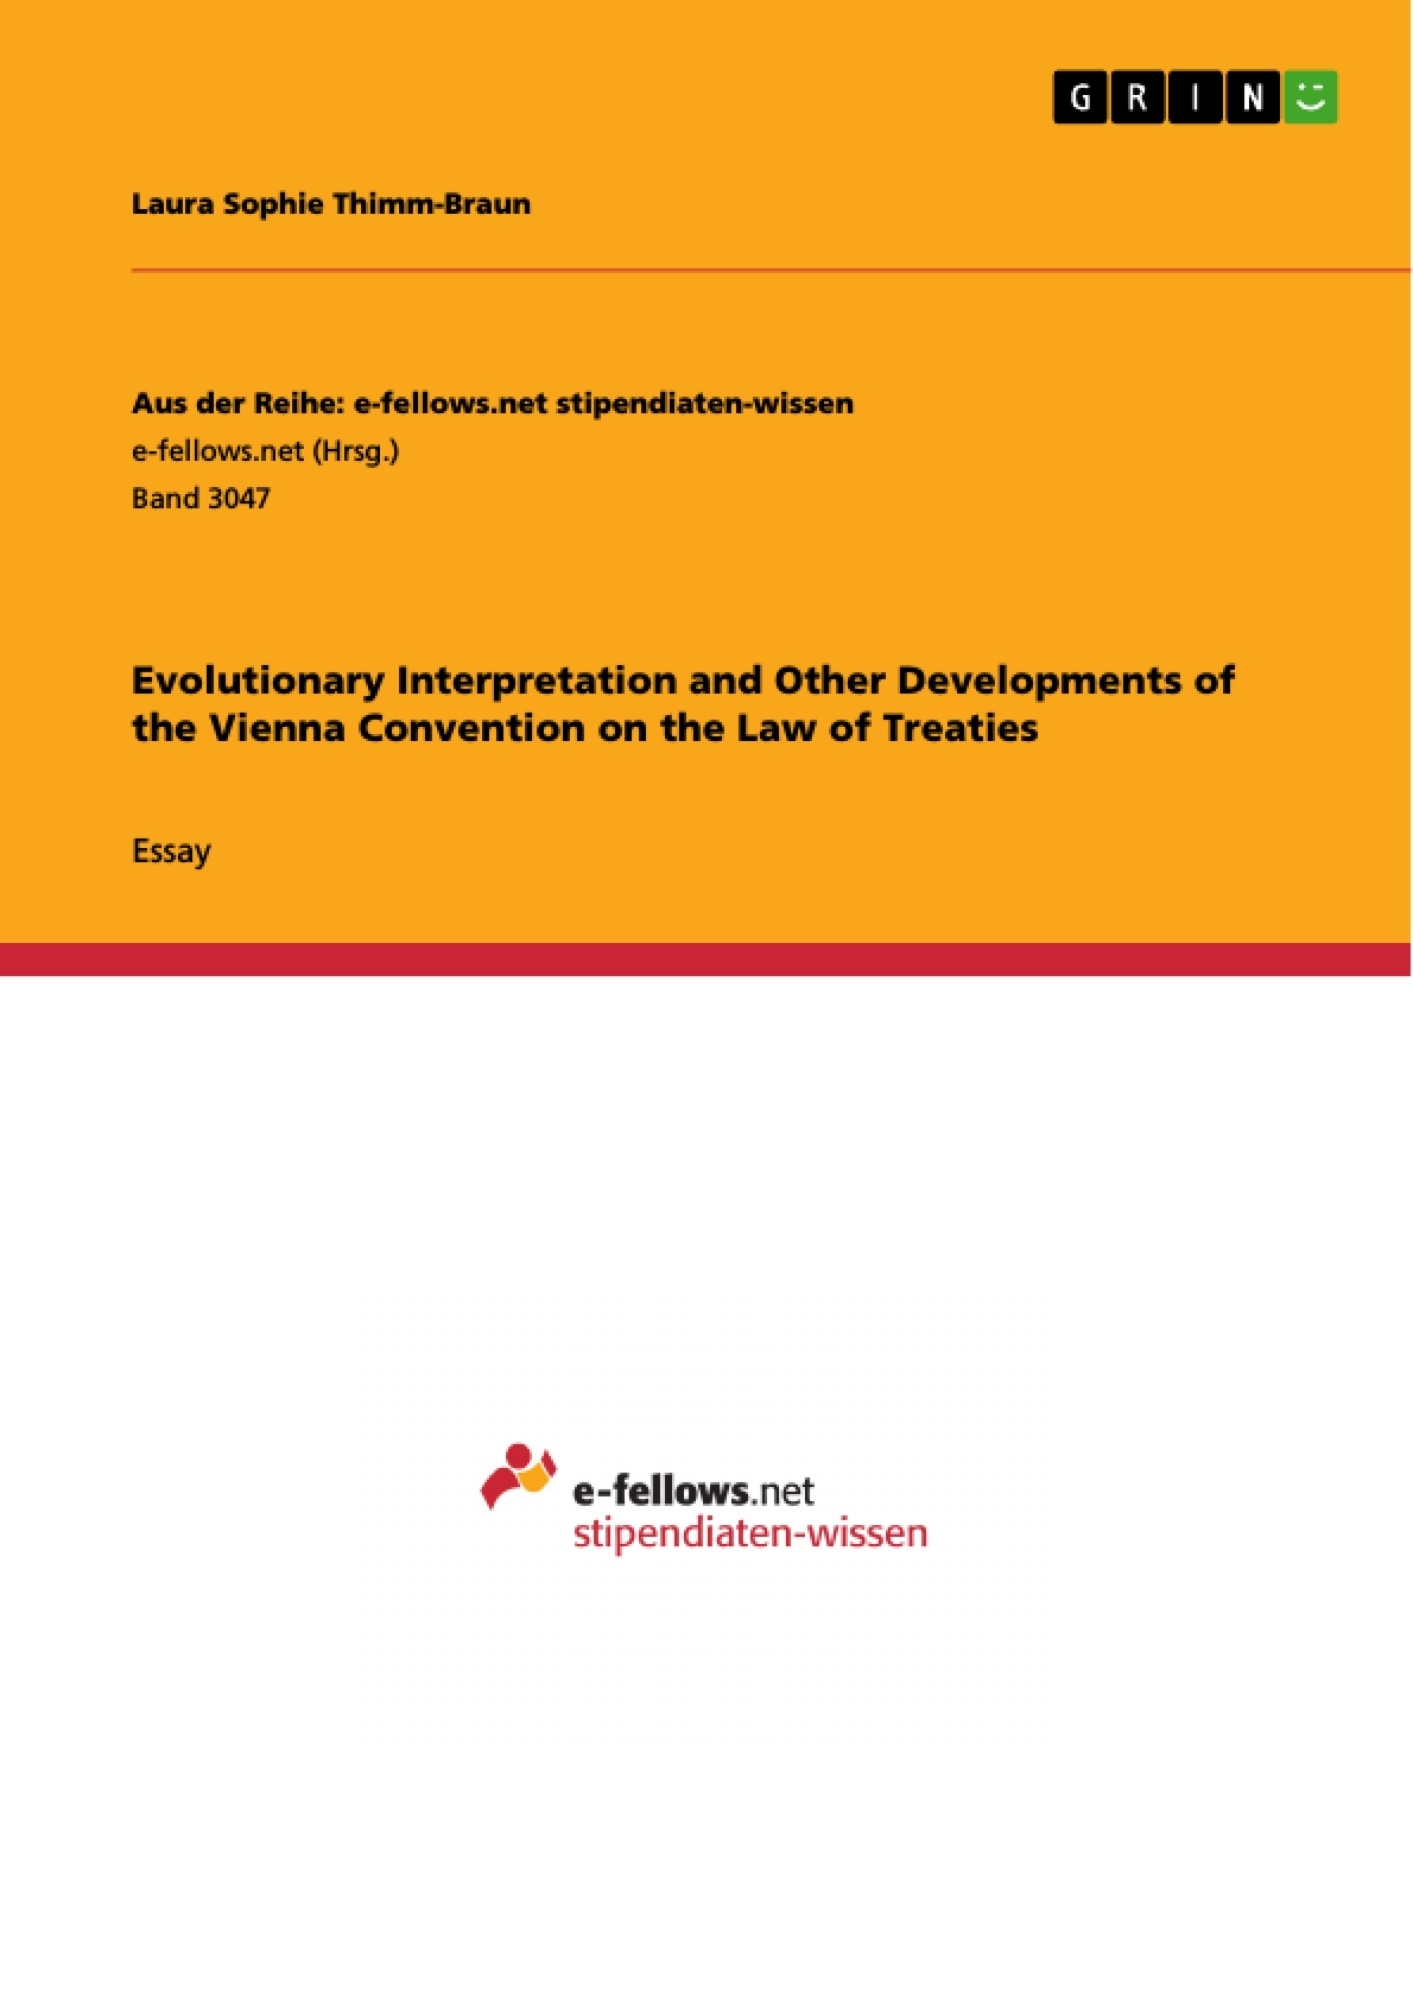 Title: Evolutionary Interpretation and Other Developments of the Vienna Convention on the Law of Treaties